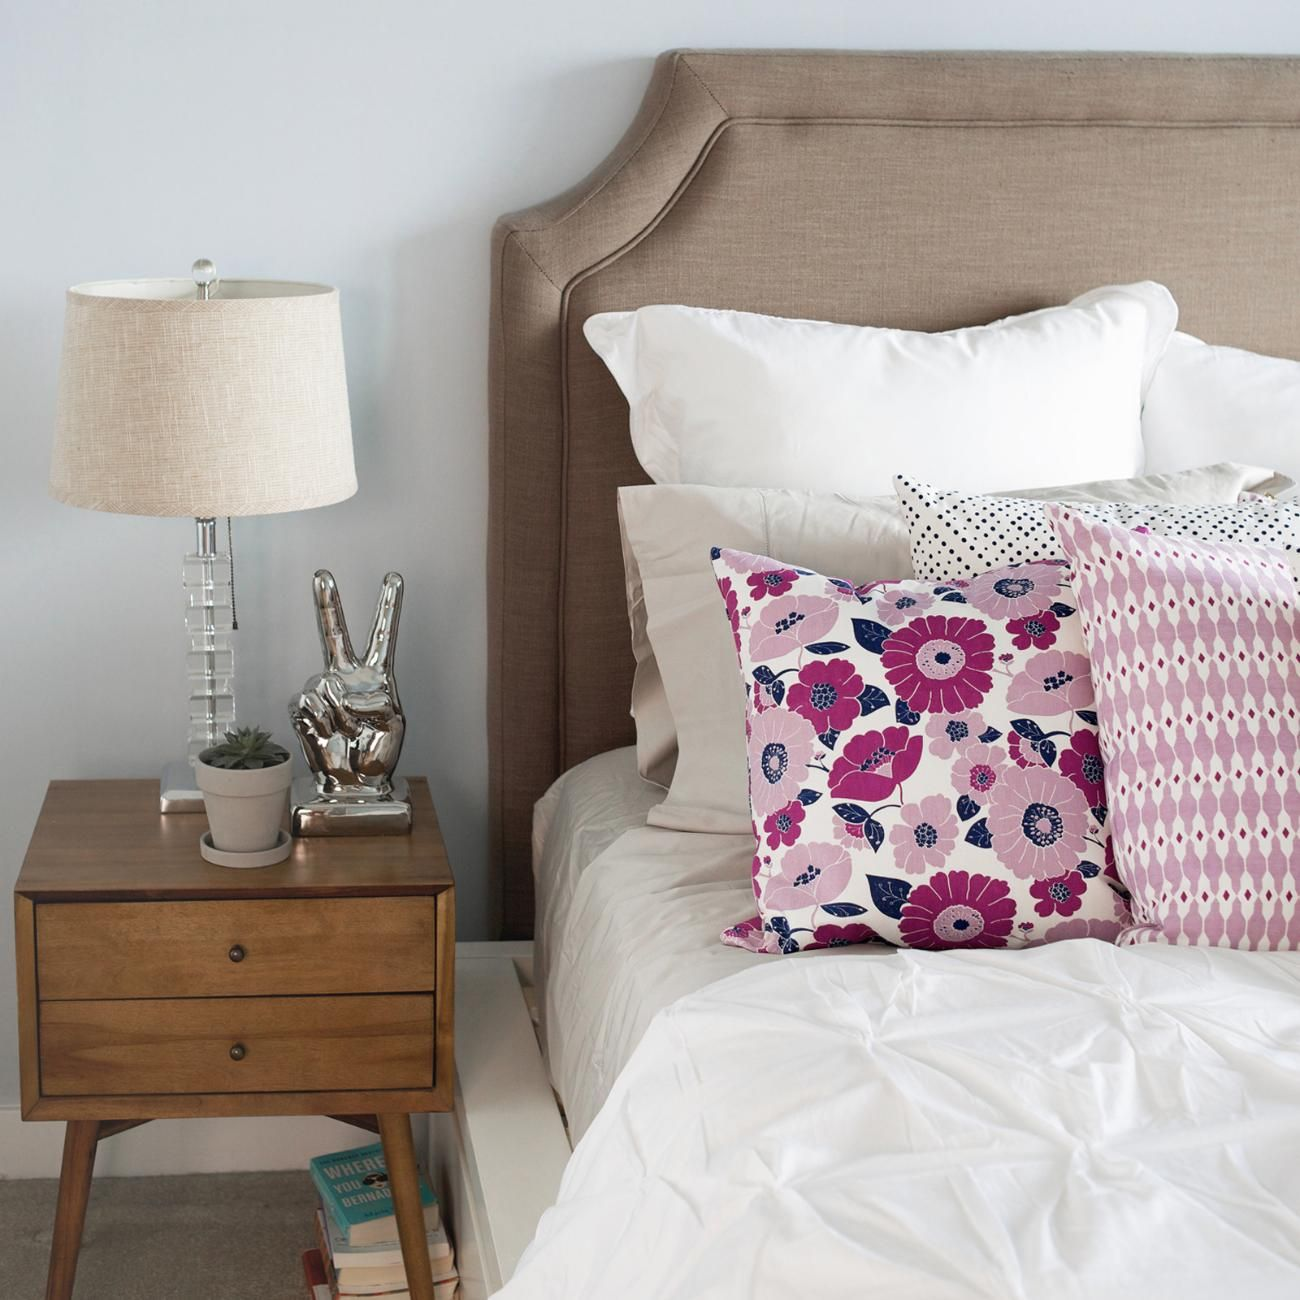 Small Bedroom Decoration Trends Photo: 2016 Decorating And Design Trends To Covet This Year